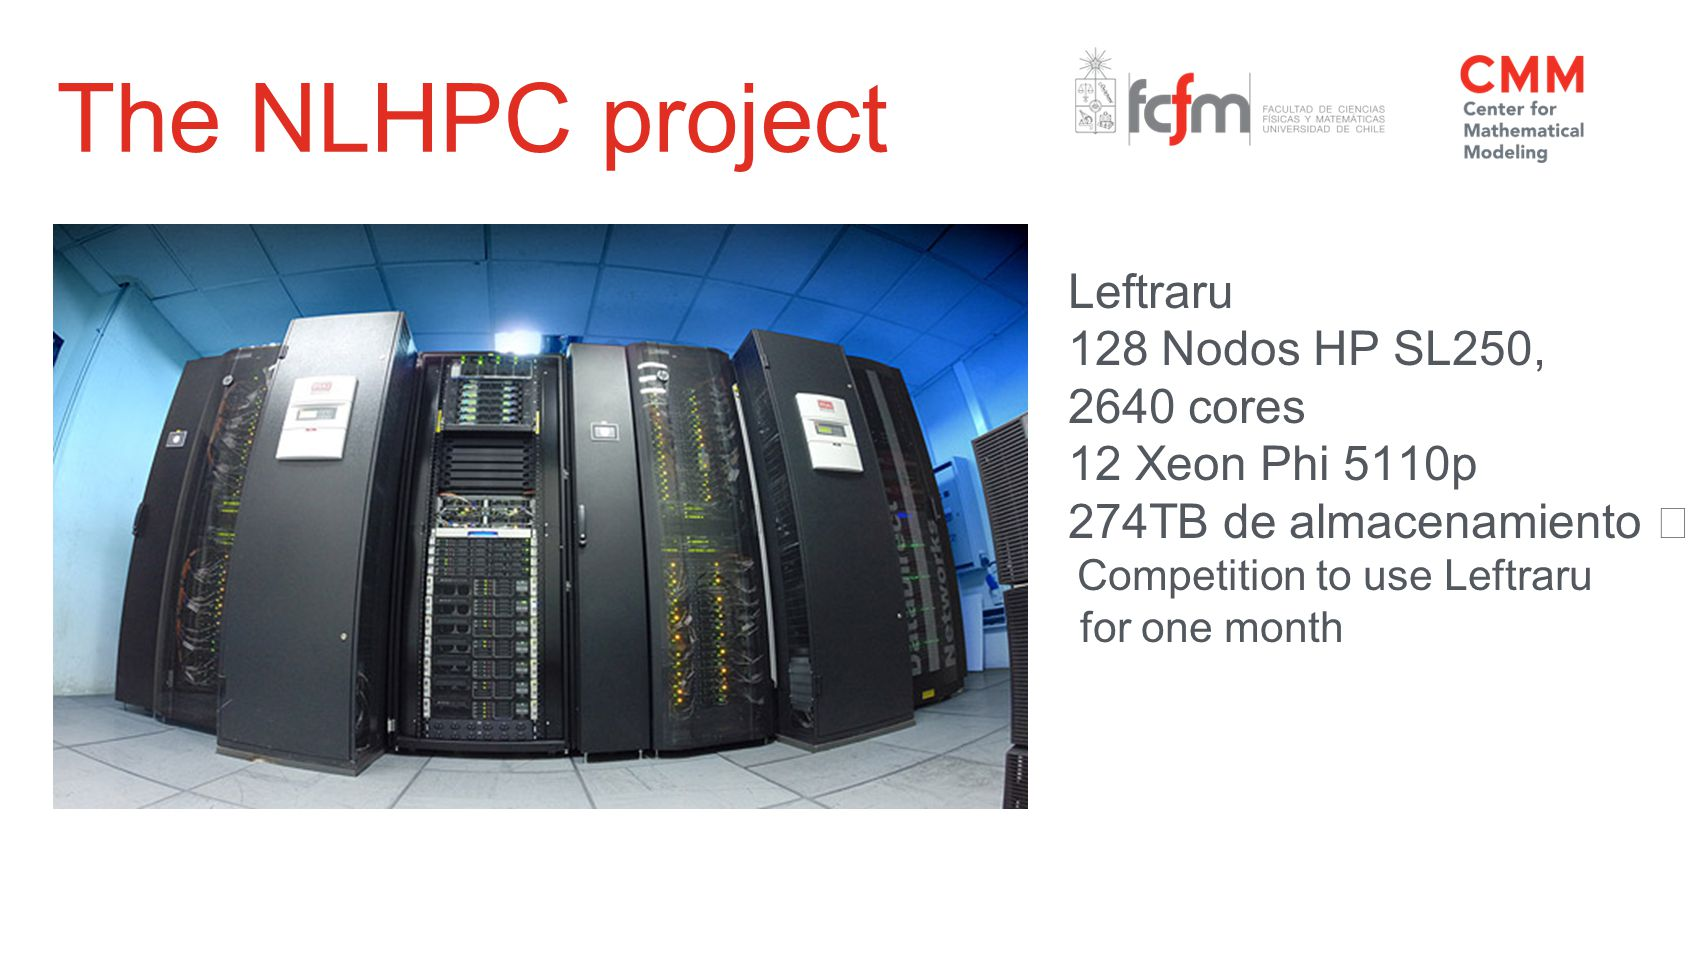 The NLHPC project Leftraru 128 Nodos HP SL250, 2640 cores 12 Xeon Phi 5110p 274TB de almacenamiento Competition to use Leftraru for one month